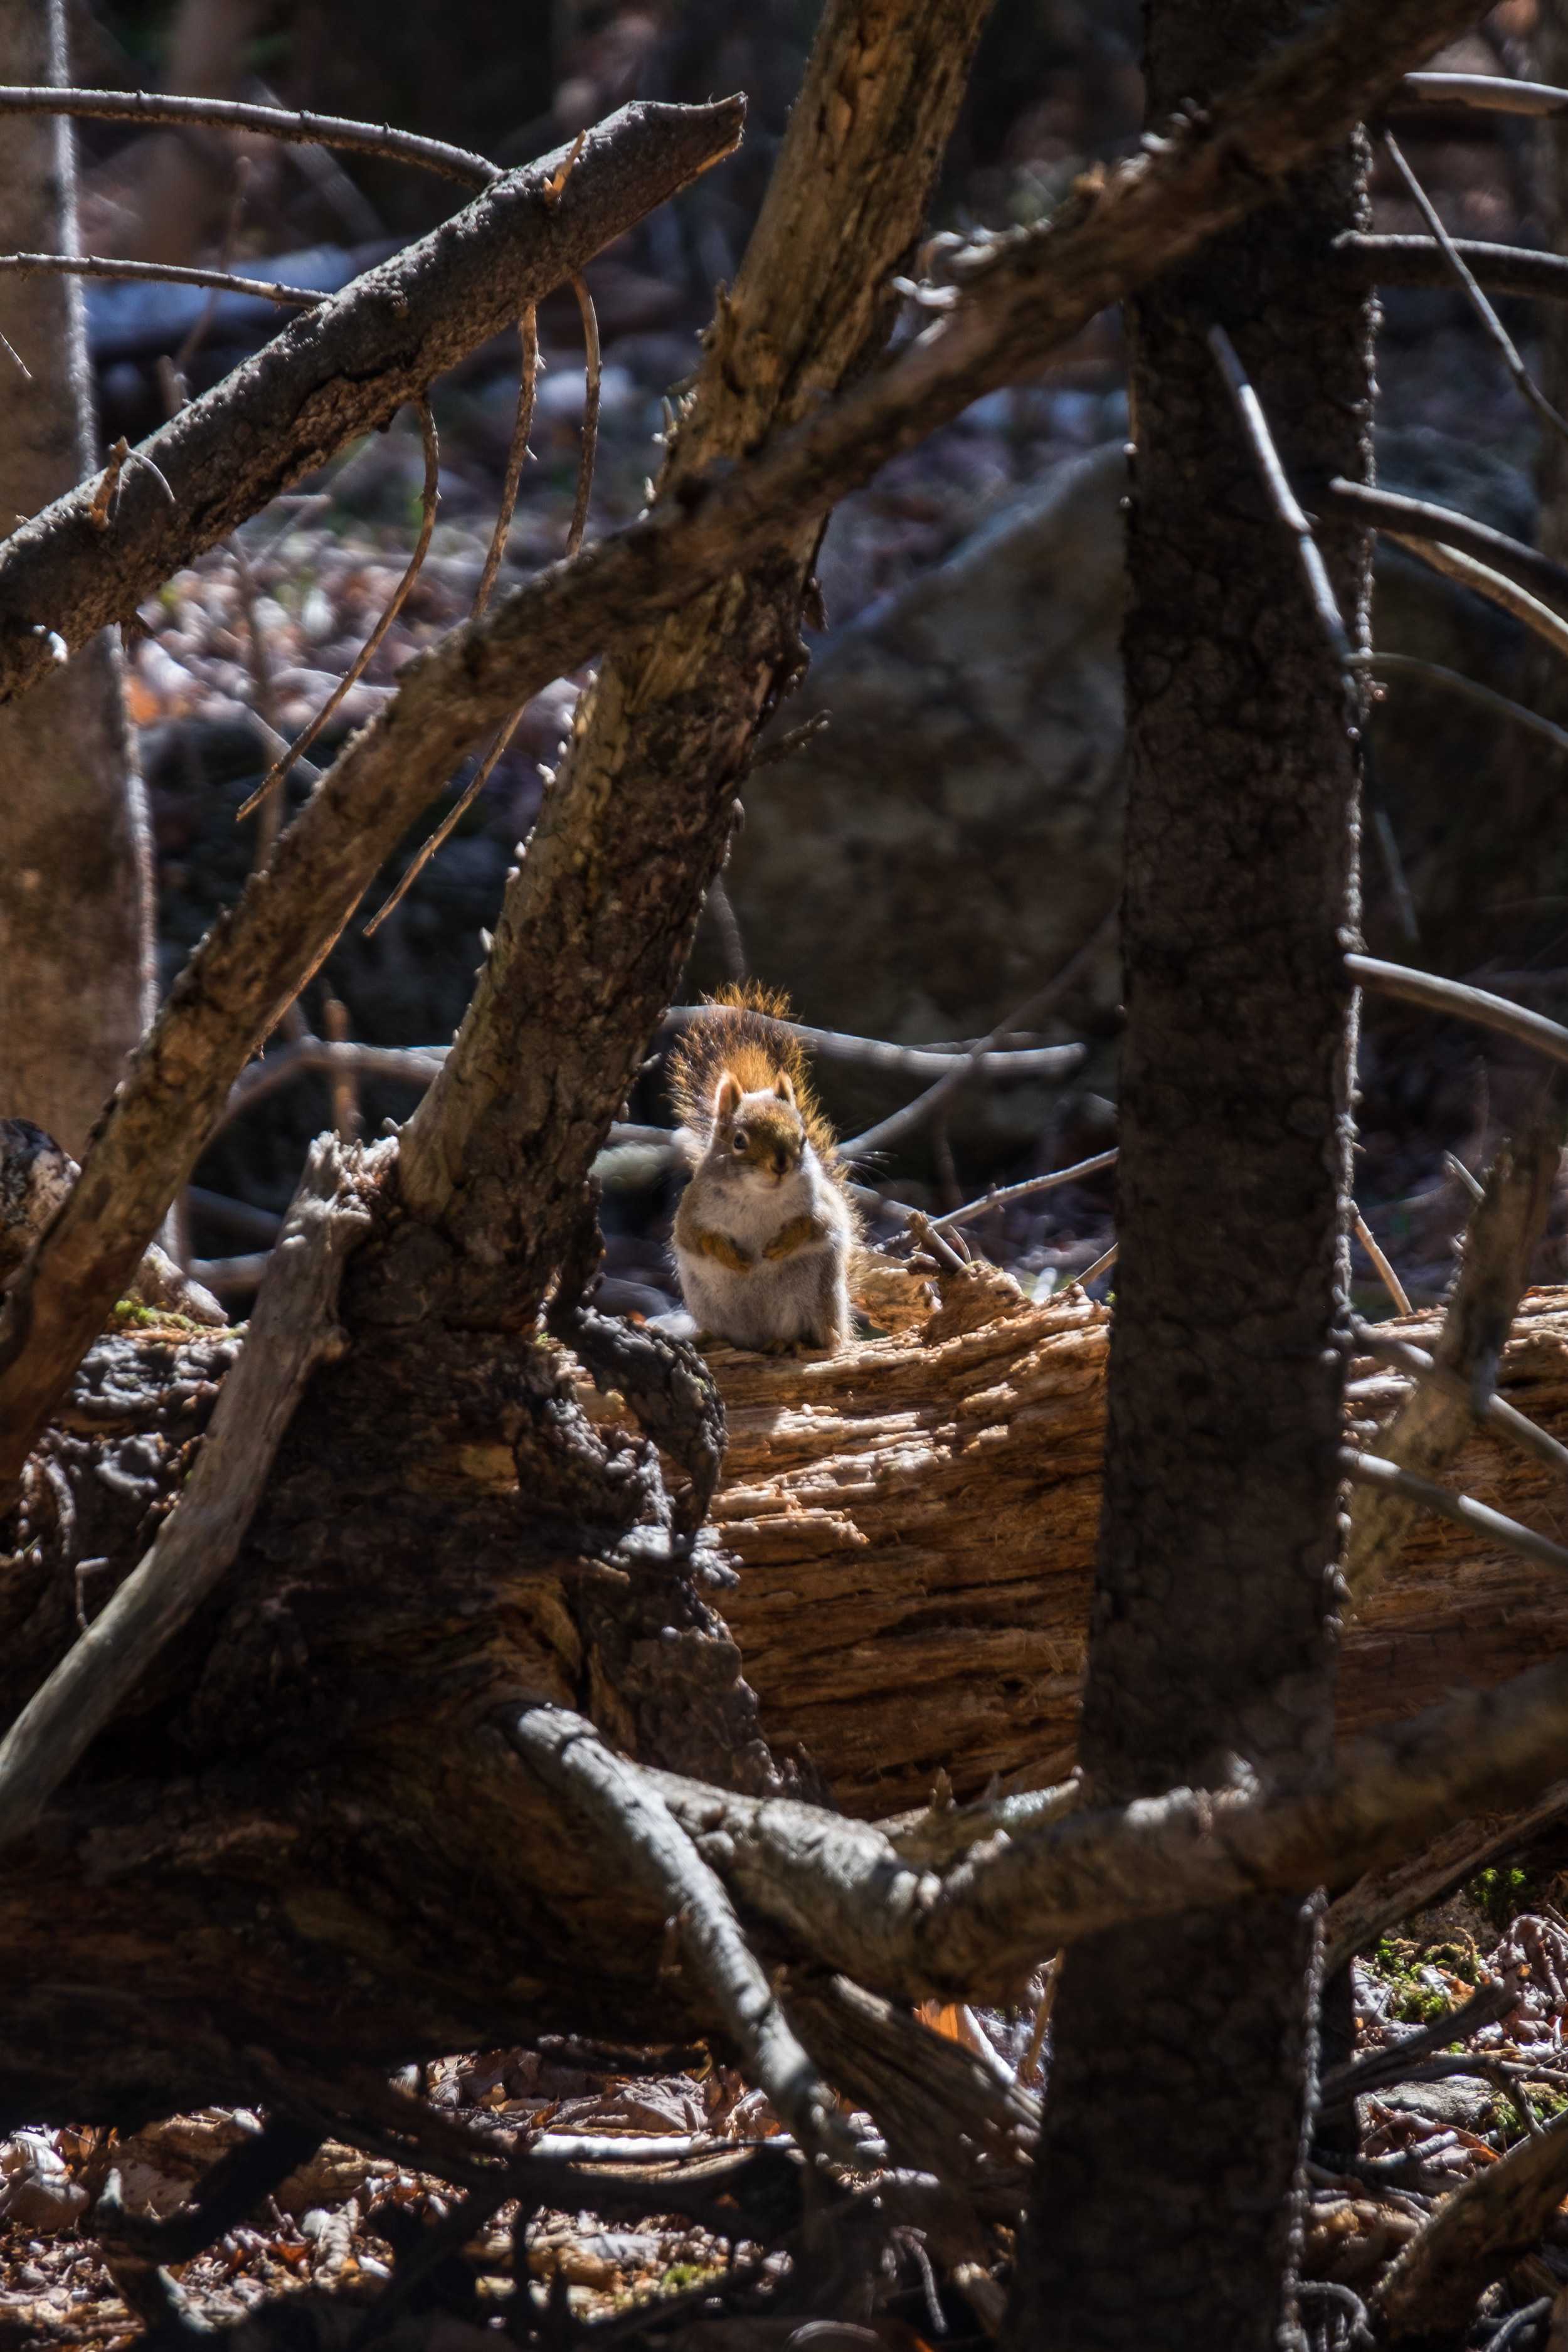 Red squirrel in Acadia National Park in Maine.